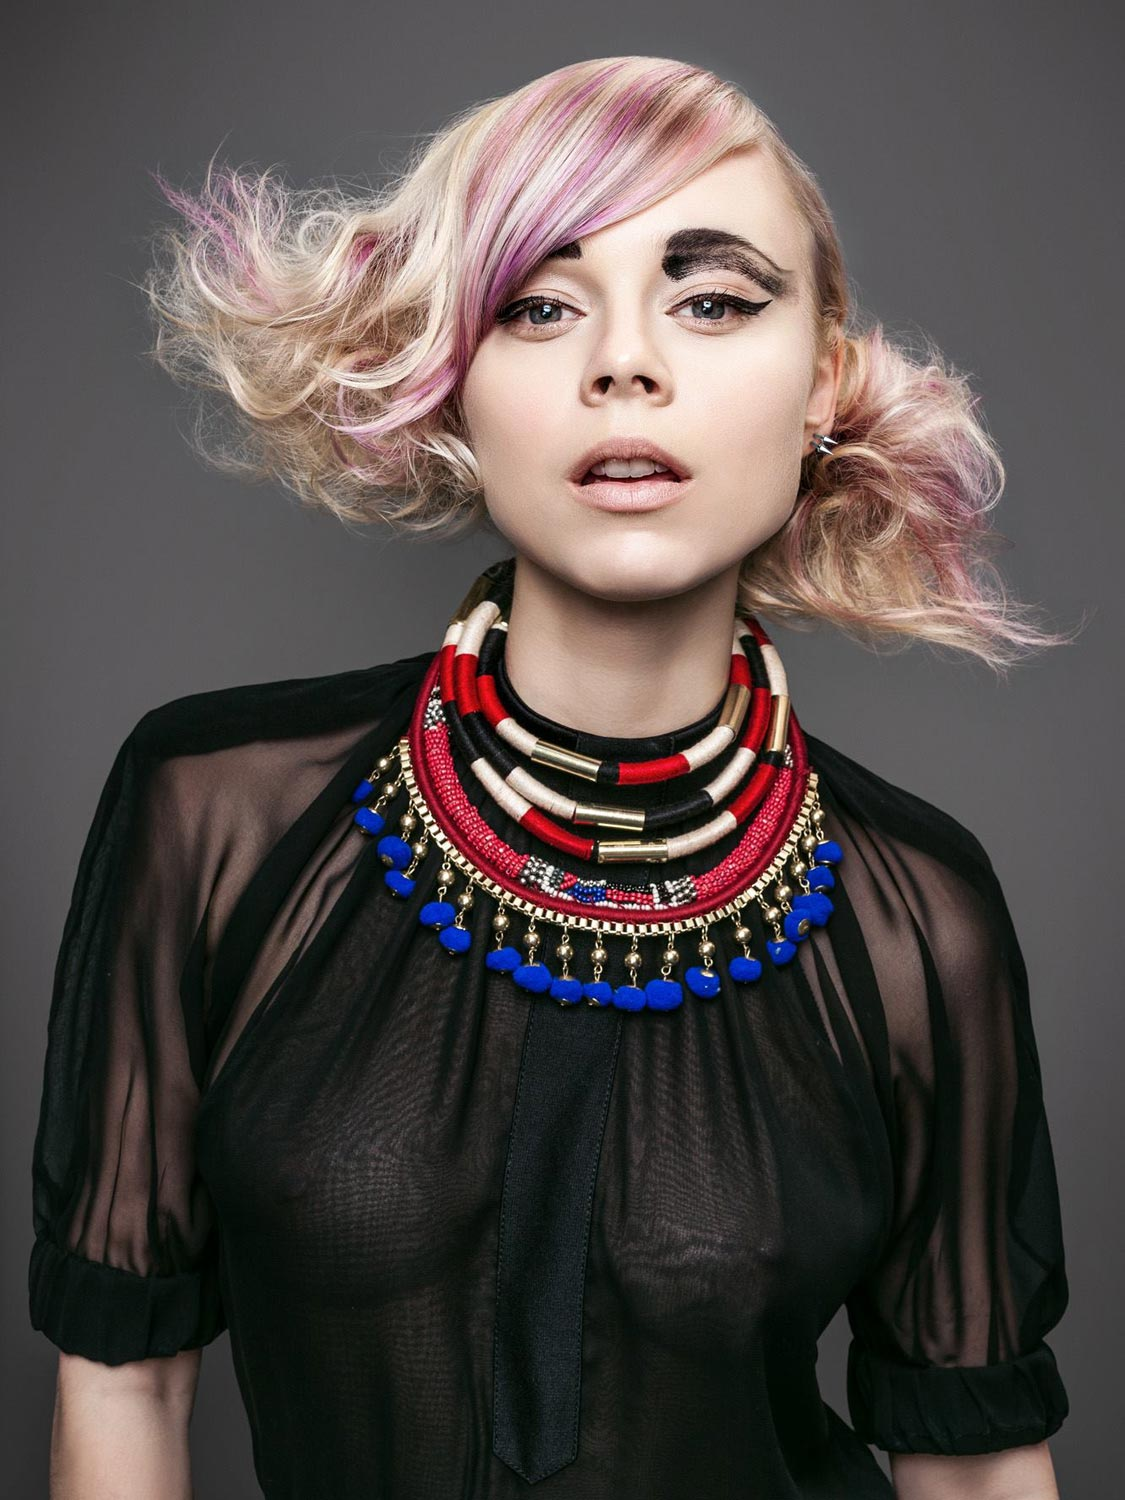 Andrea Blahová, Salon TOP, Třebíč – nominace v soutěžní kategorii Color Zoom Collection 2015 GLOBAL CREATIVE COLORIST.